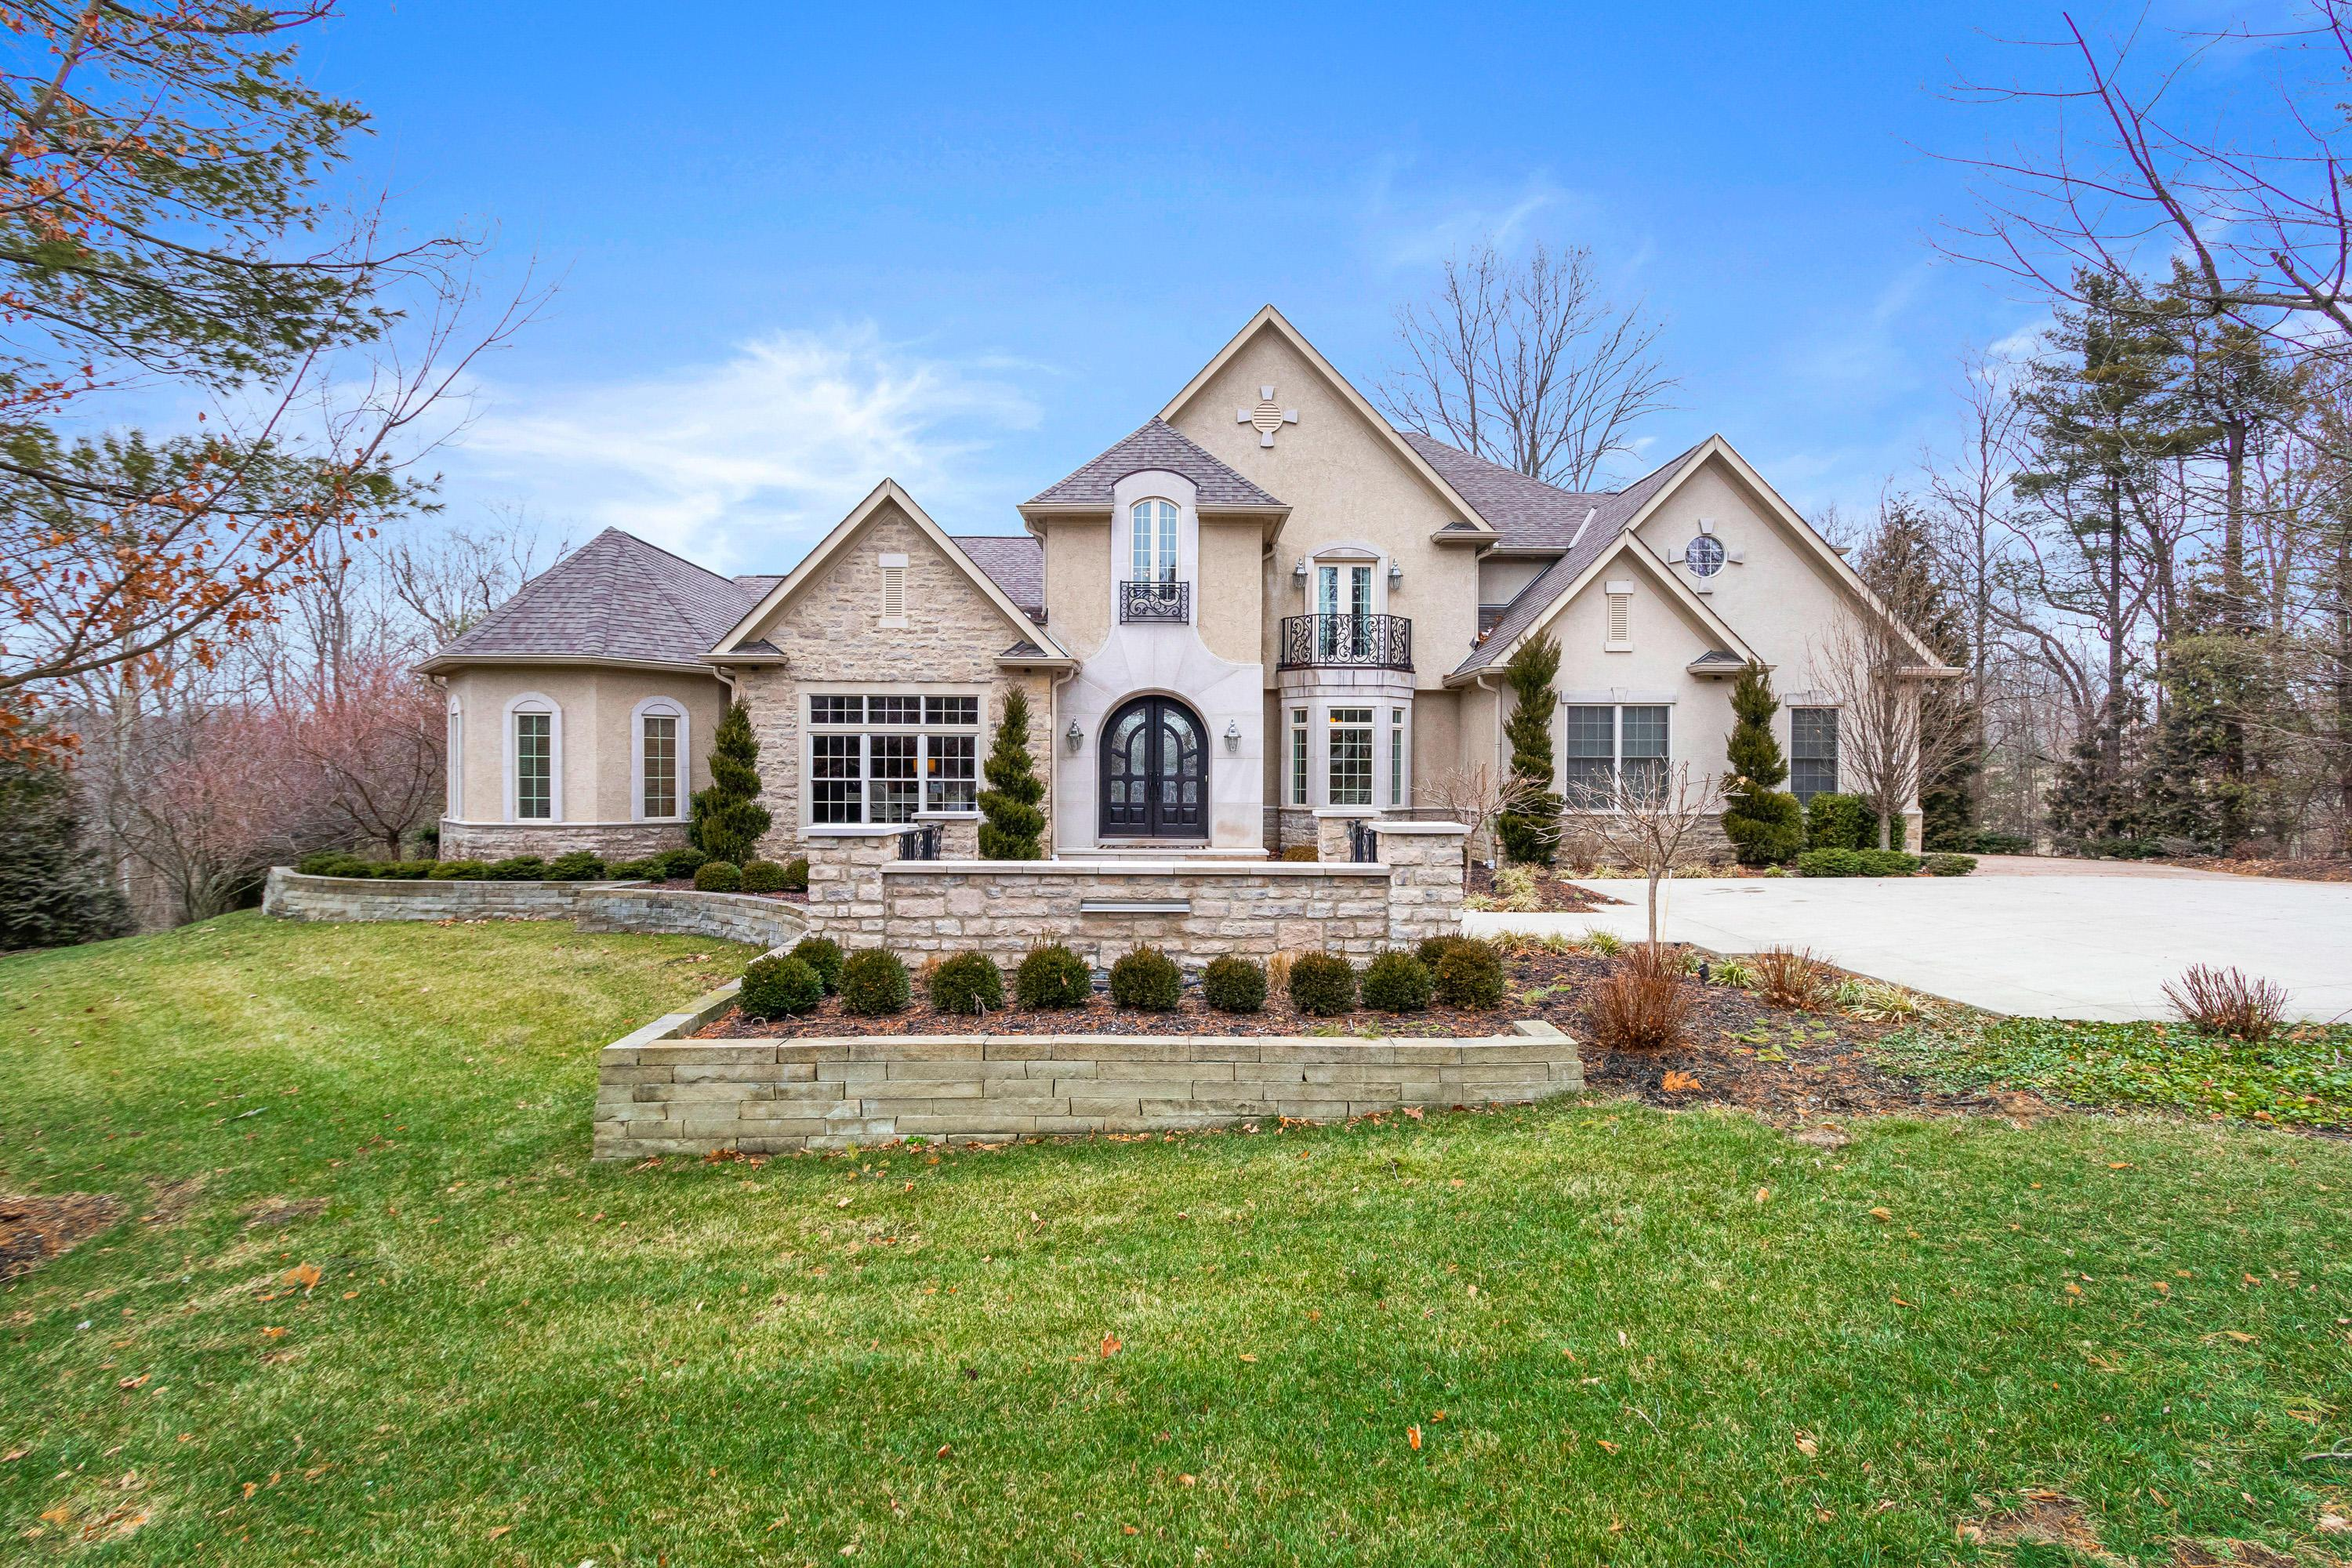 Photo of 940 Riverbend Avenue, Powell, OH 43065